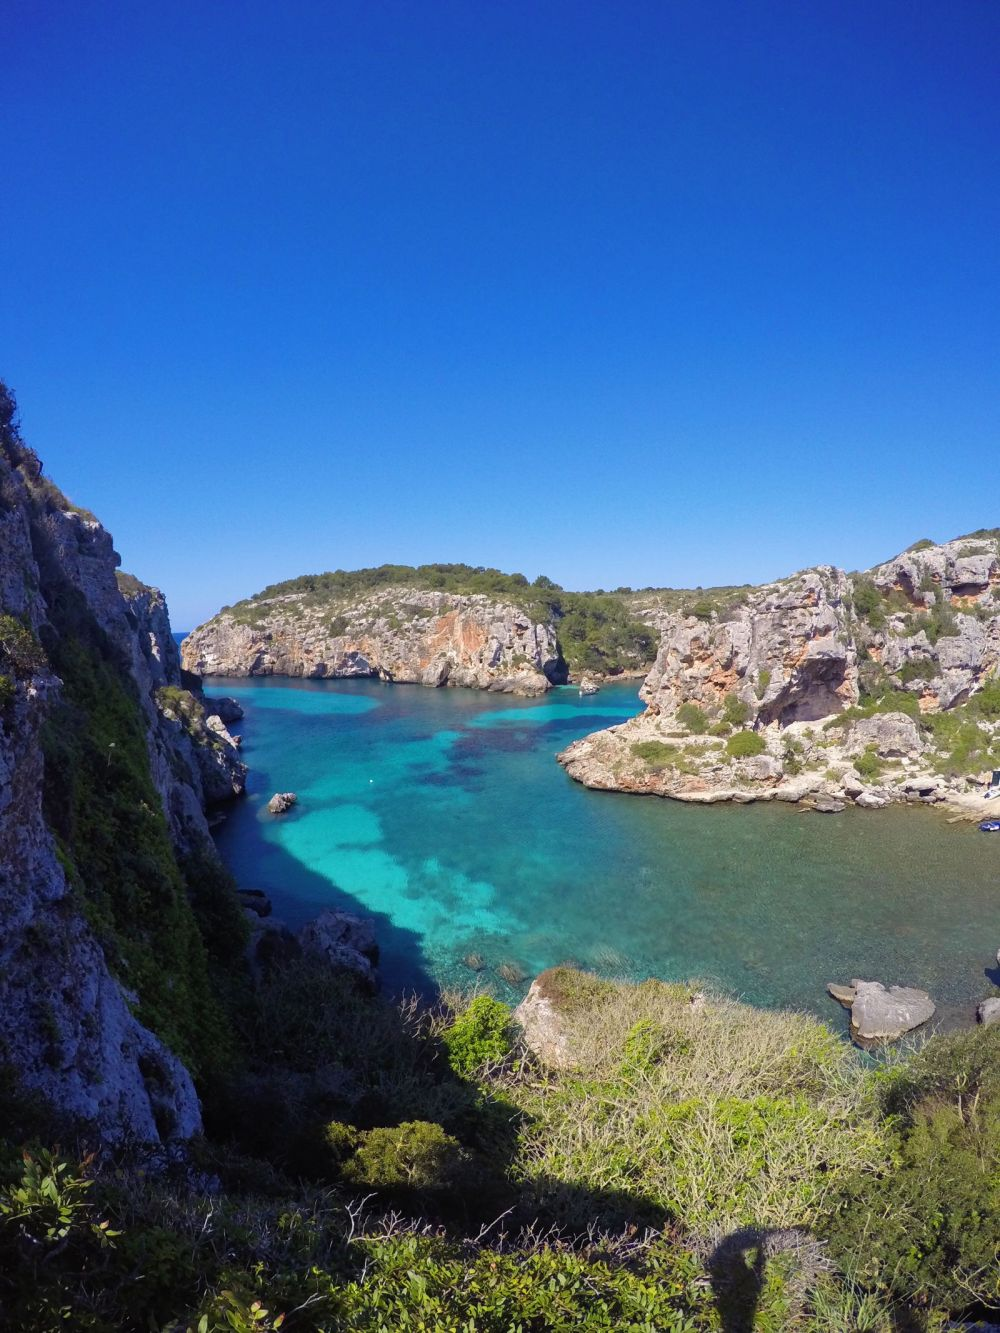 Ever Wondered What The Spanish Island Of Menorca Looks Like? Well Here It is... (5)